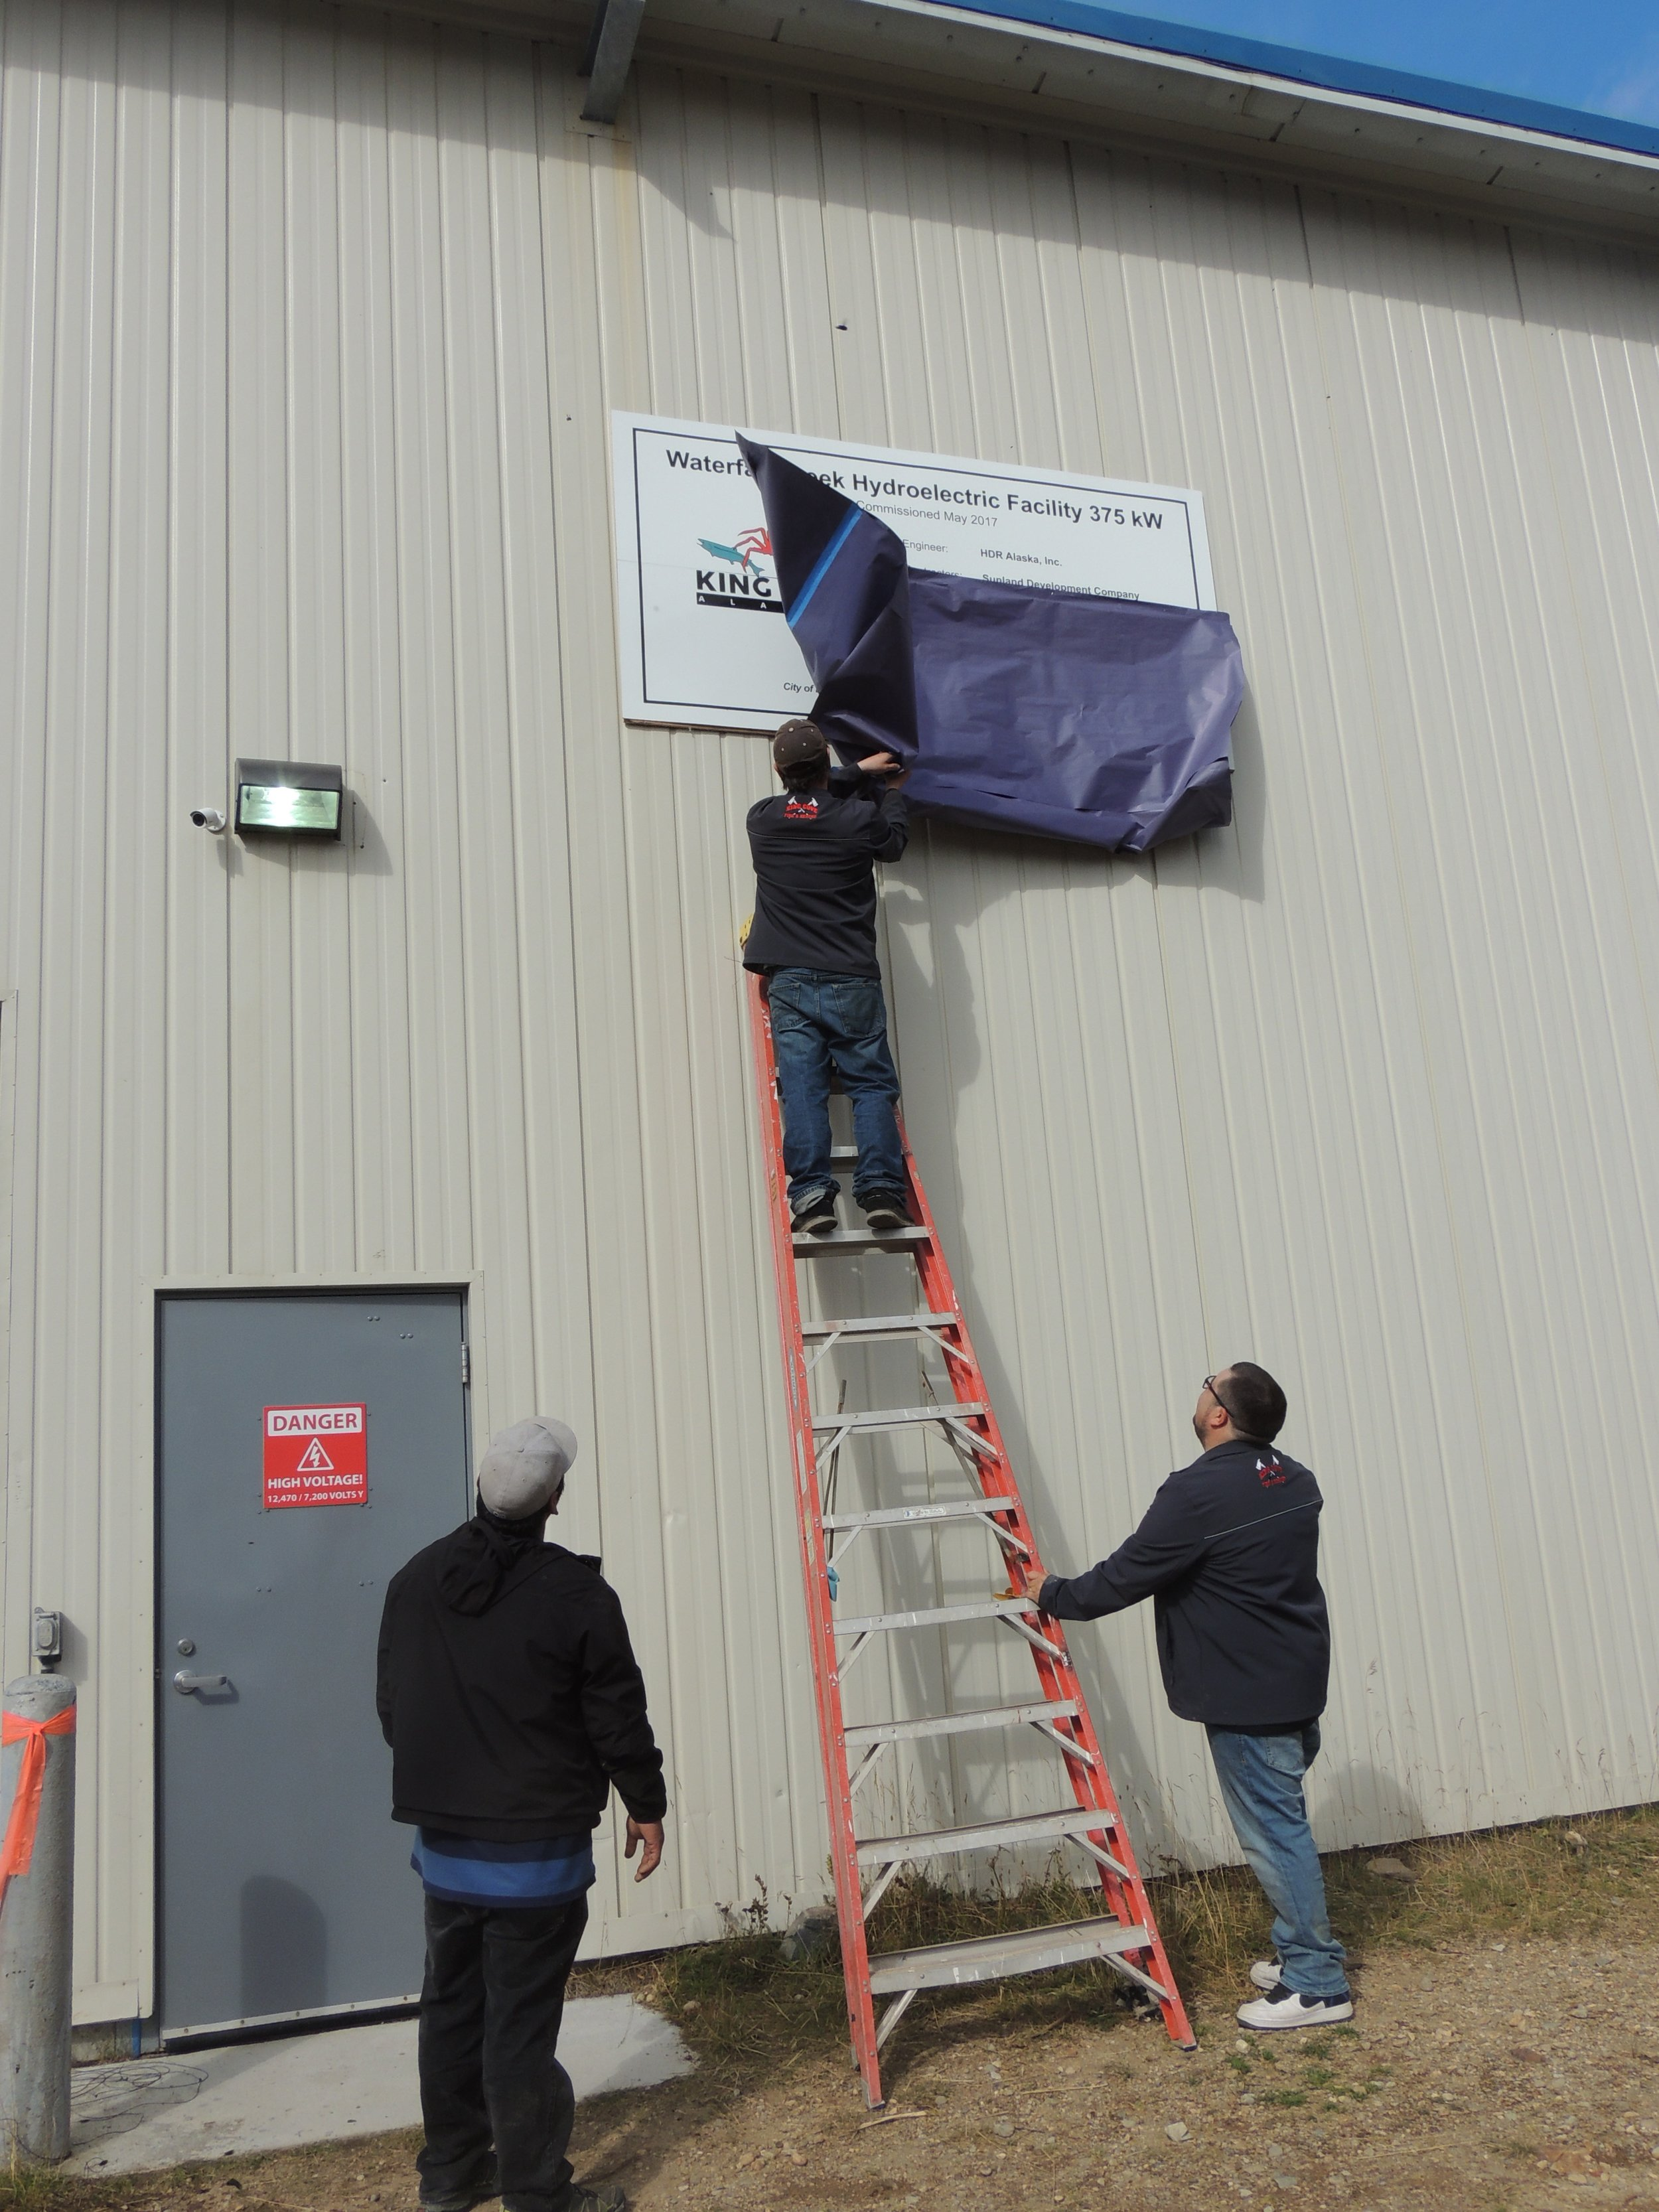 City employees unveiling the new sign at the facility for Waterfall Creek Hydroelectric Facility. Photo provided by Aleutians East Borough.